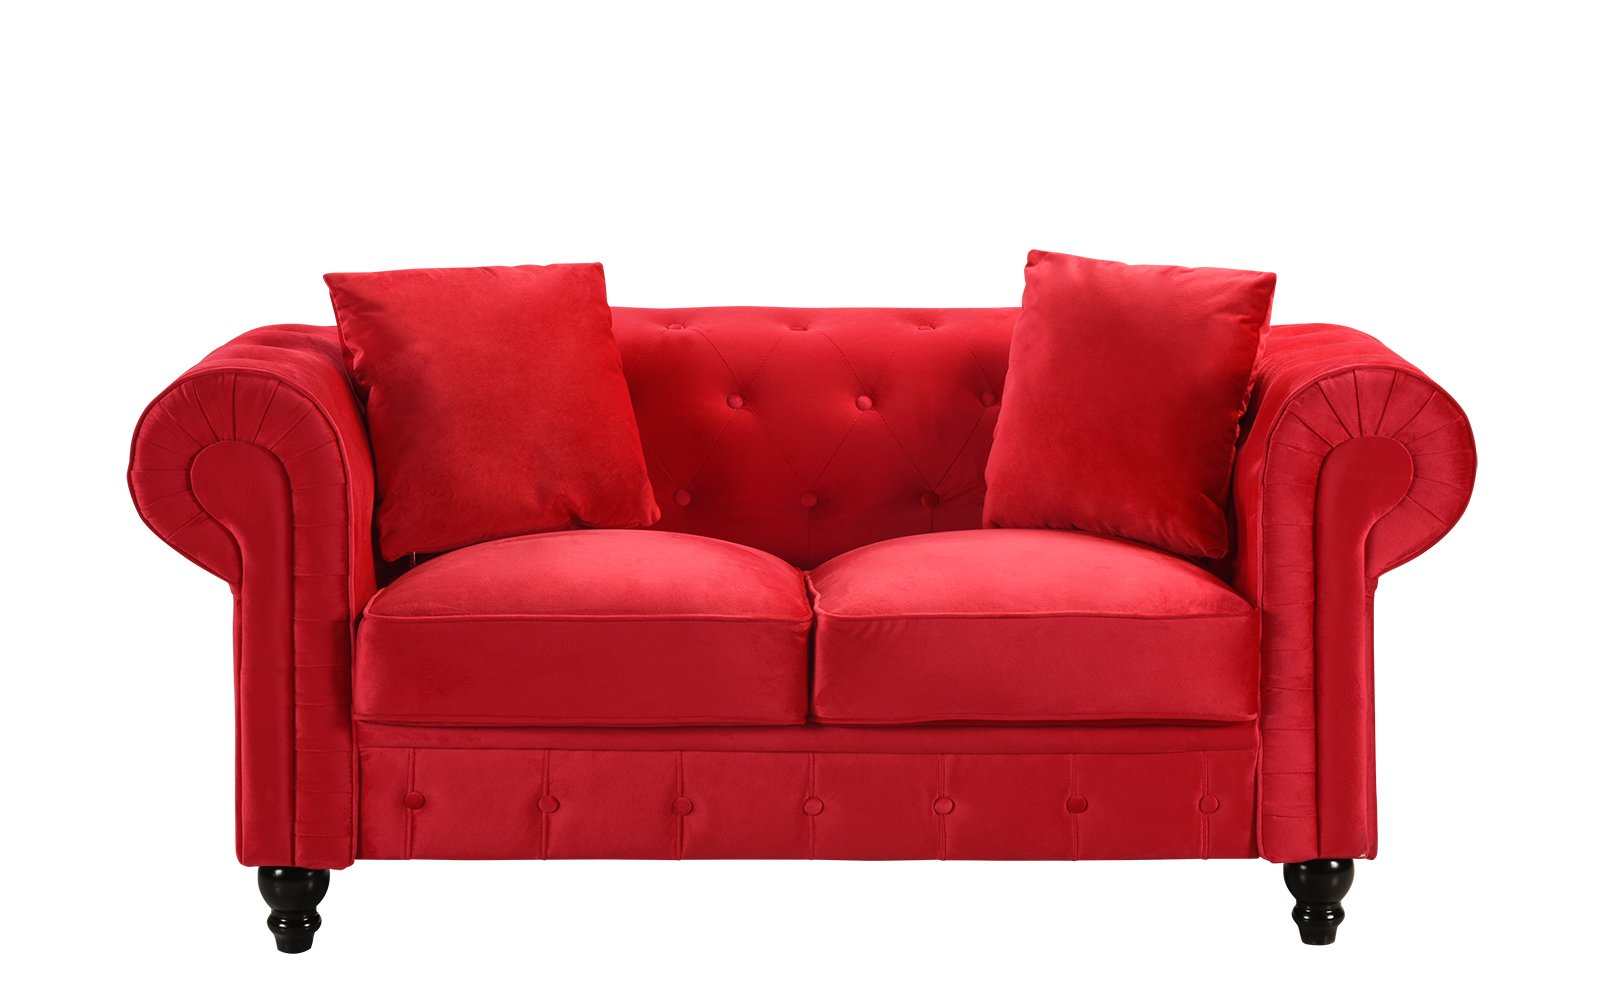 Details about Modern Chesterfield Loveseat Sofa Velvet Upholstered Love  Seat Couch Red